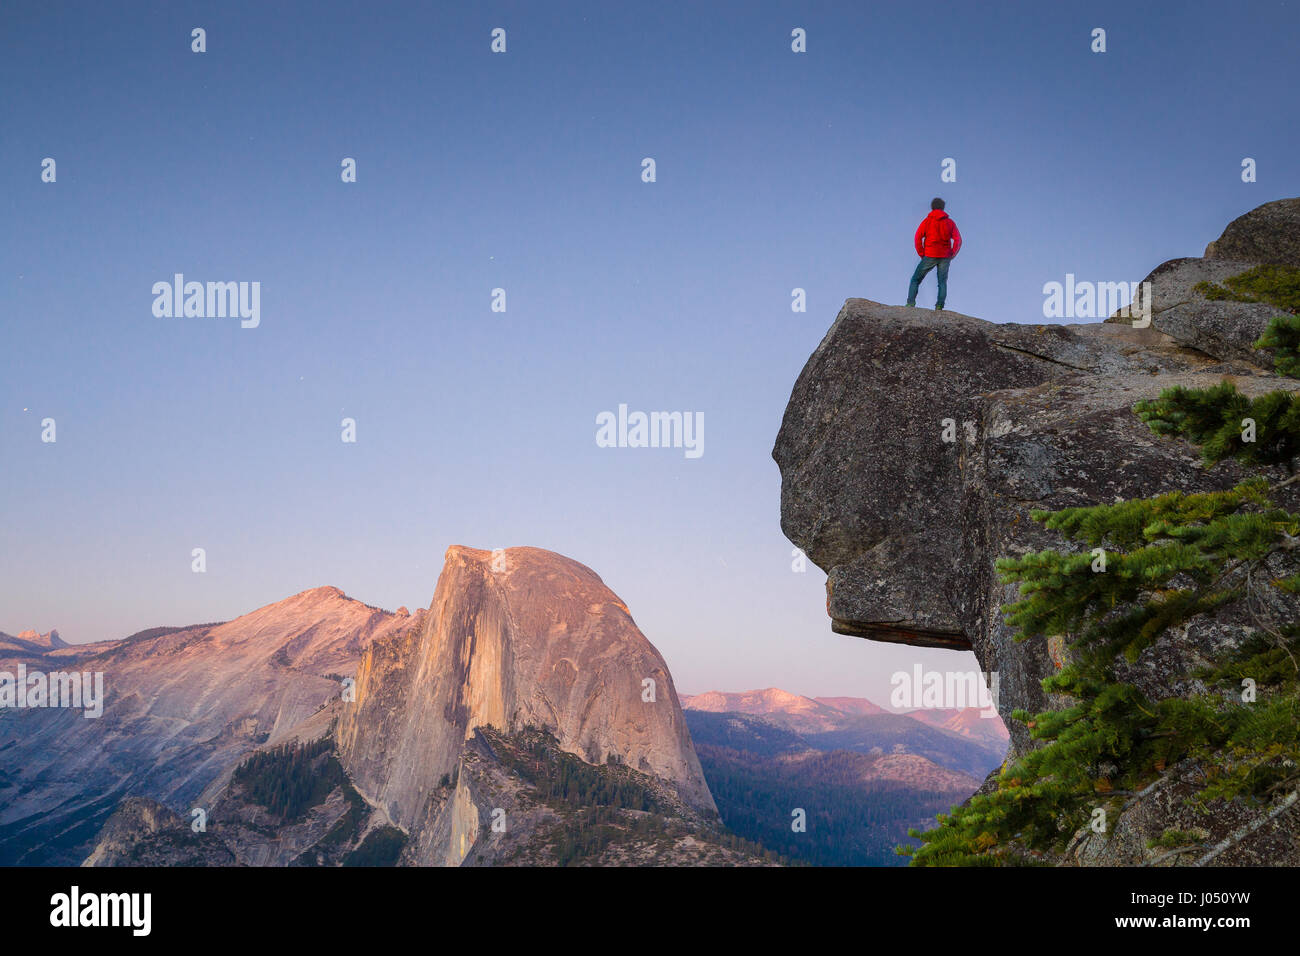 A fearless hiker is standing on an overhanging rock enjoying the view towards famous Half Dome at Glacier Point - Stock Image